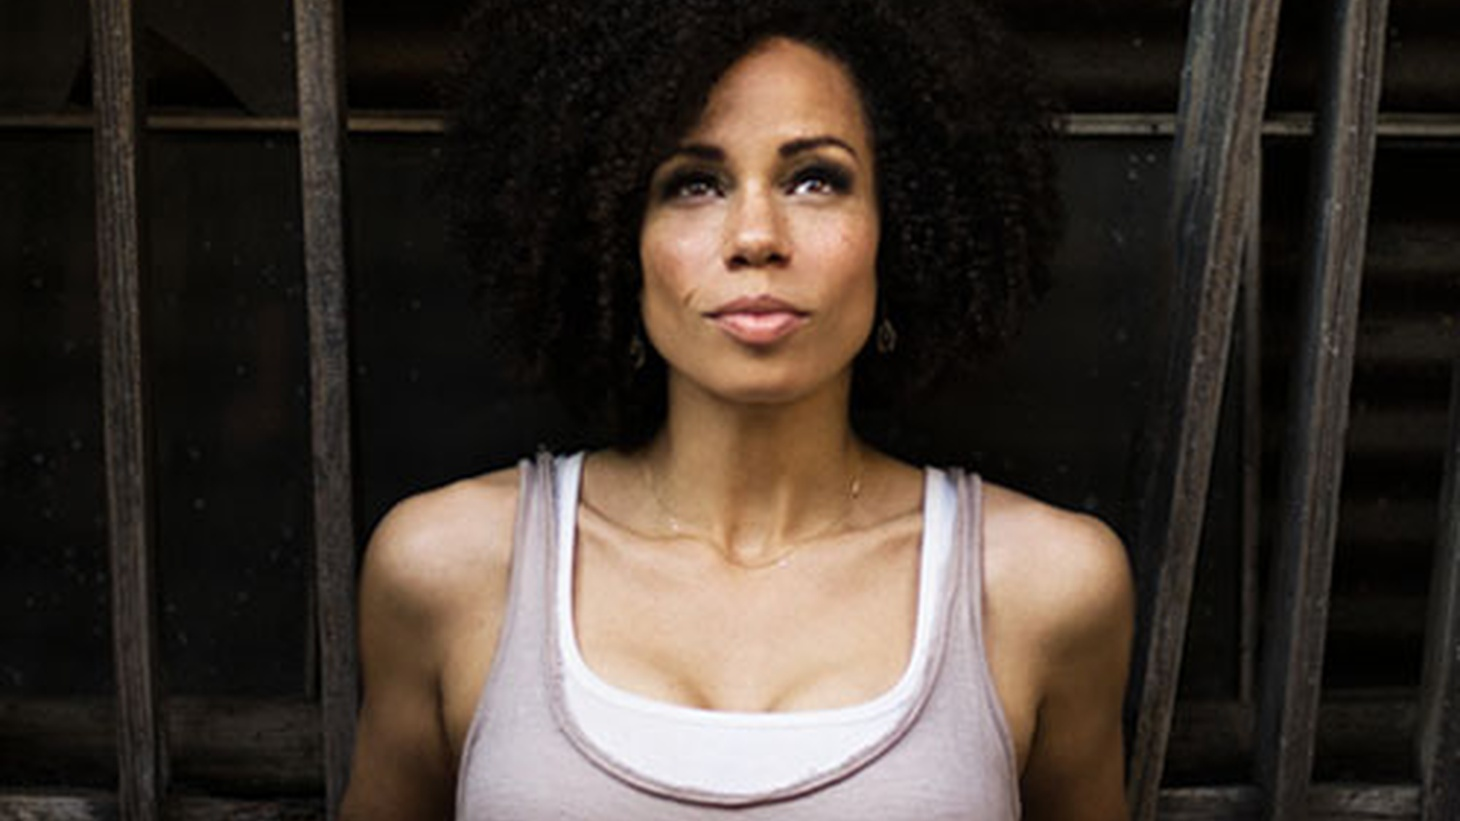 This week Rhythm Planet serves up a trove of new releases, including music by Gillian Margot, Paquito d'Rivera, Gerald Clayton, Brooklyn Gypsies, Ryan Truesdell, Omar Sosa, Terri Lynne Carrington and more!